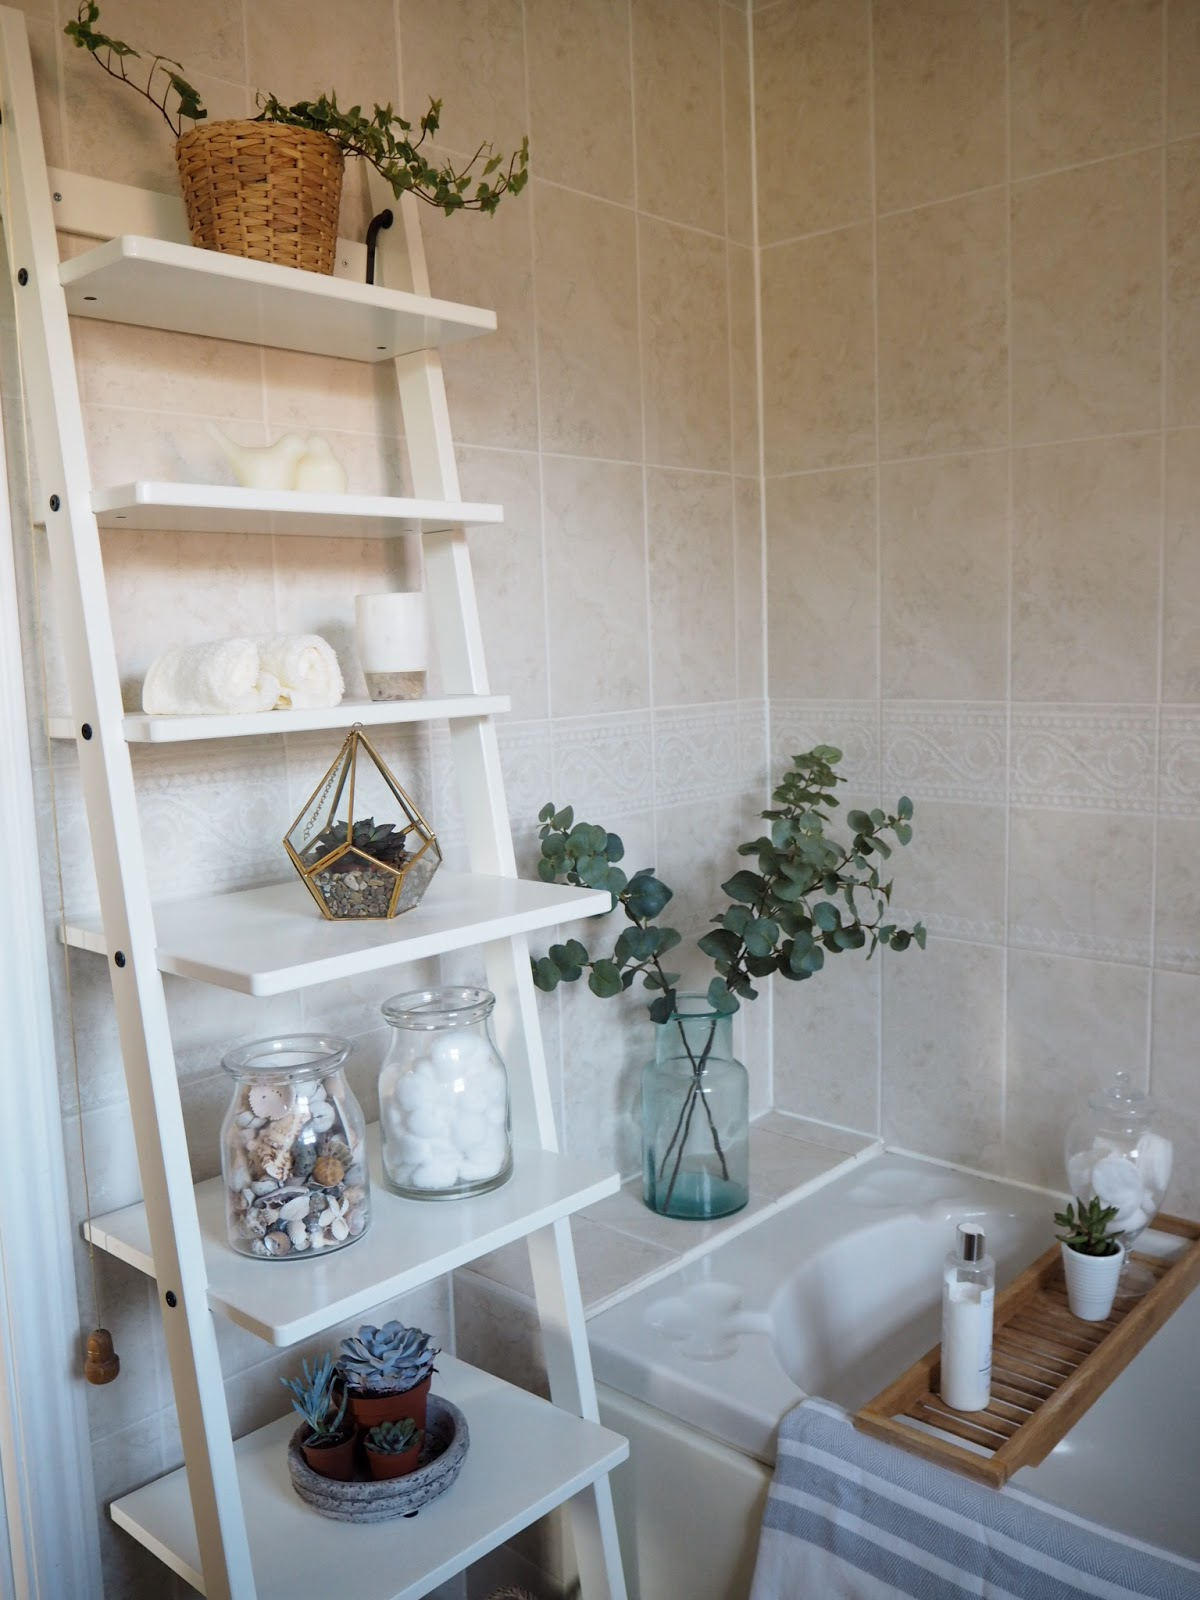 Quick & simple bathroom makeover - Using only accessories ...